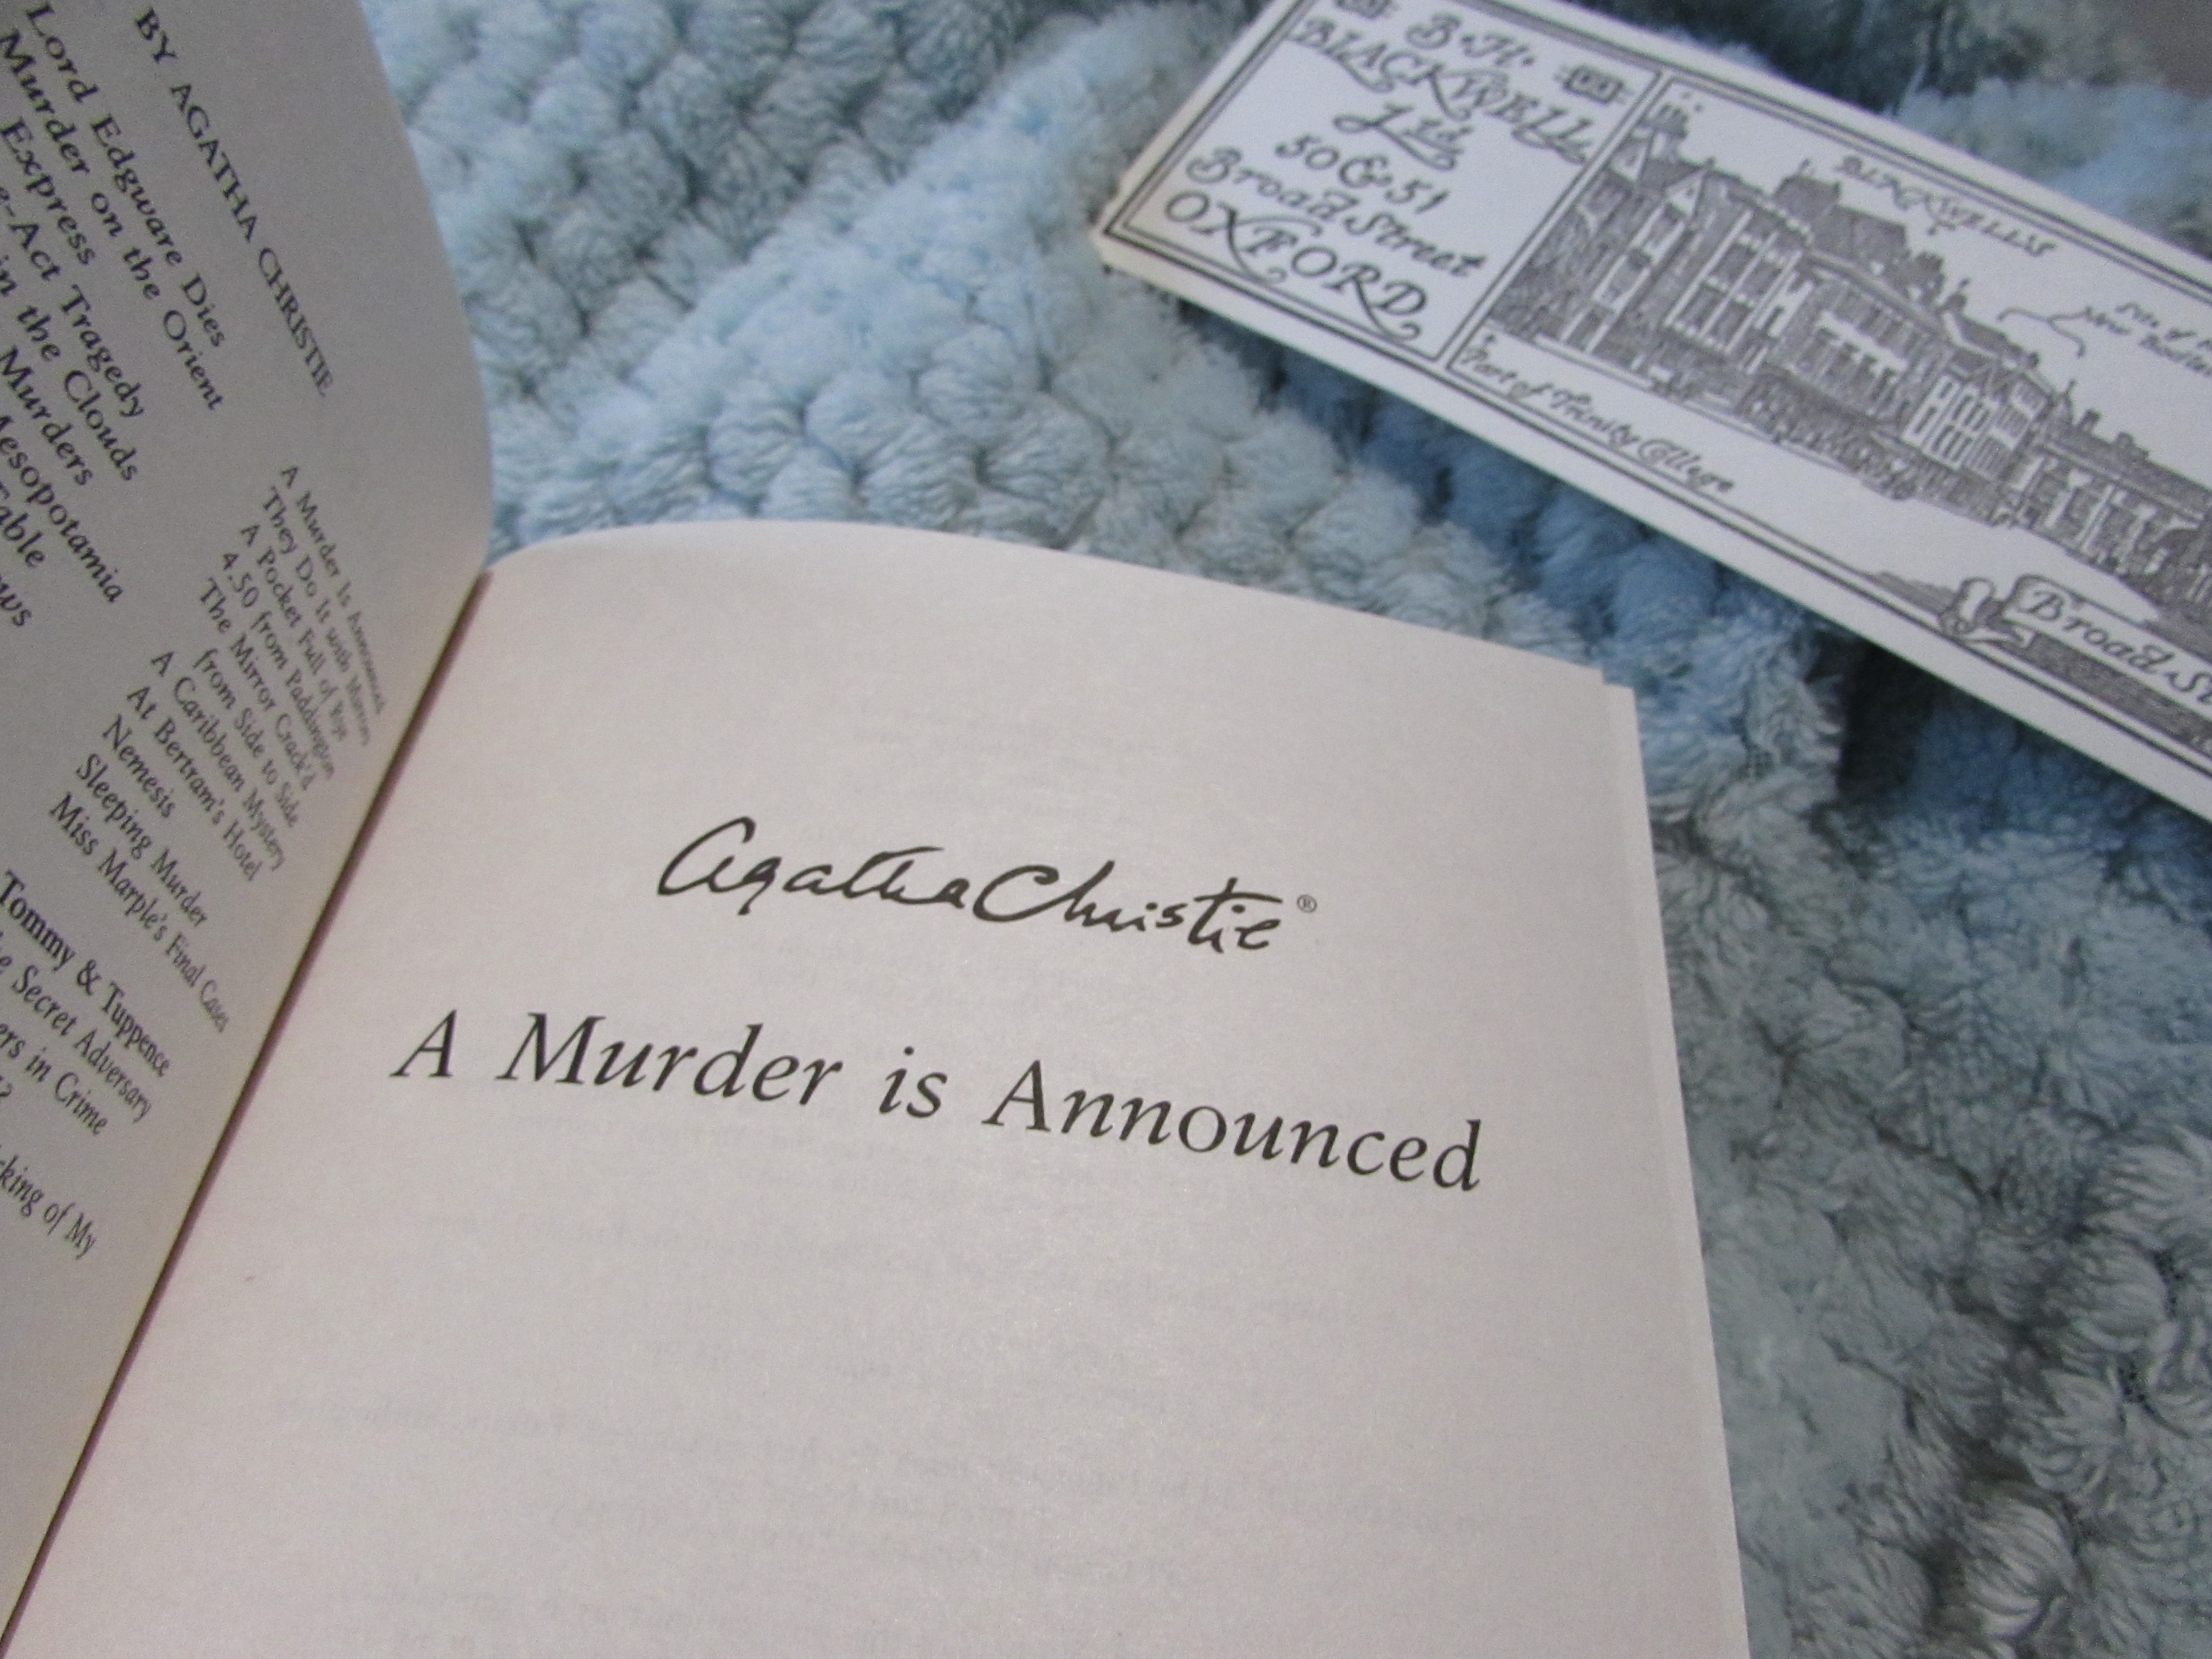 A Weekend of Reading | Just Mercy, Agatha Christie, and More